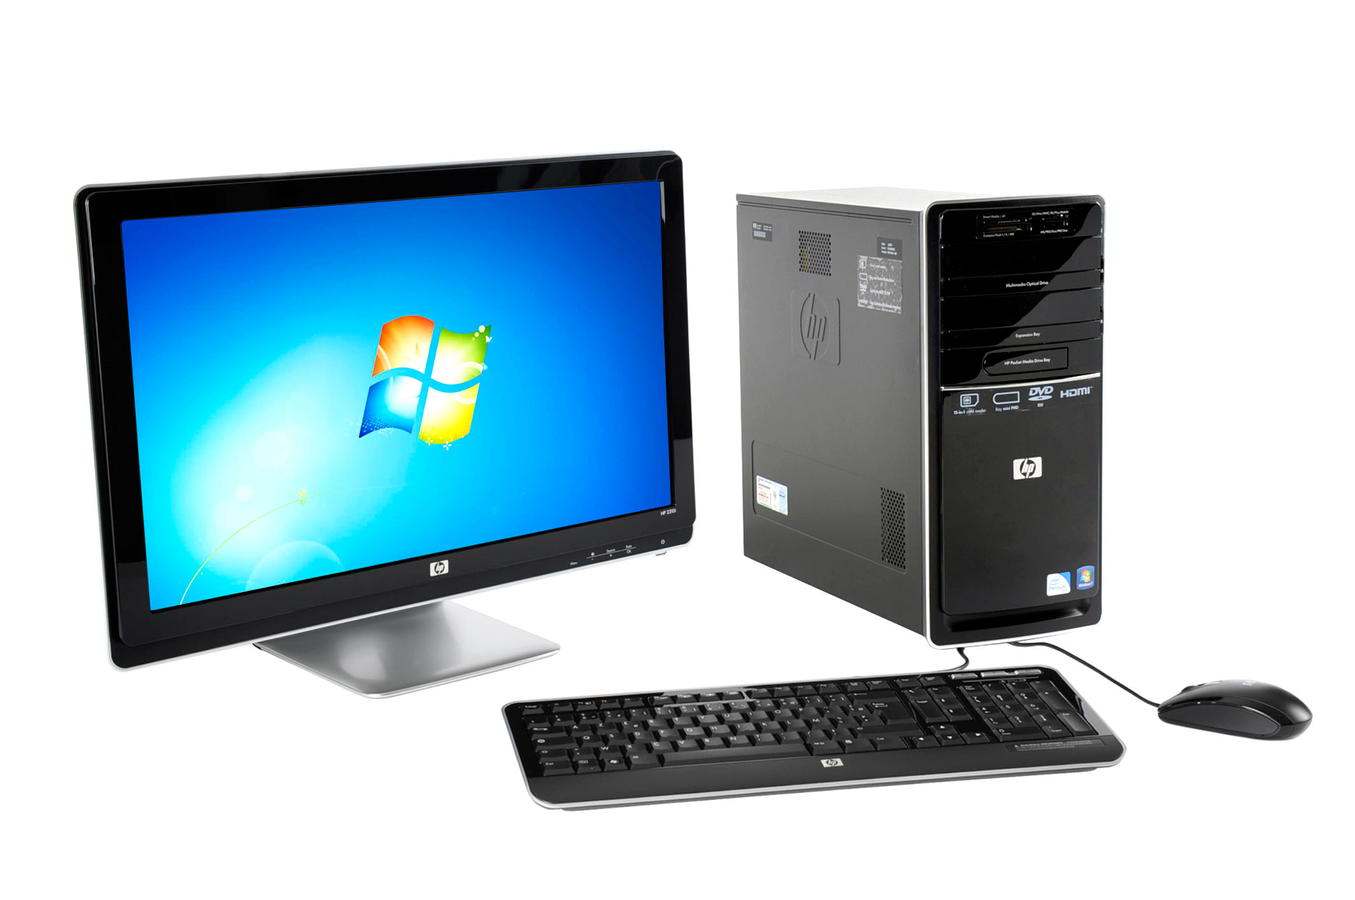 Pc de bureau hp p6356fr 23 p6356fr 3190021 darty - Darty informatique pc bureau ...